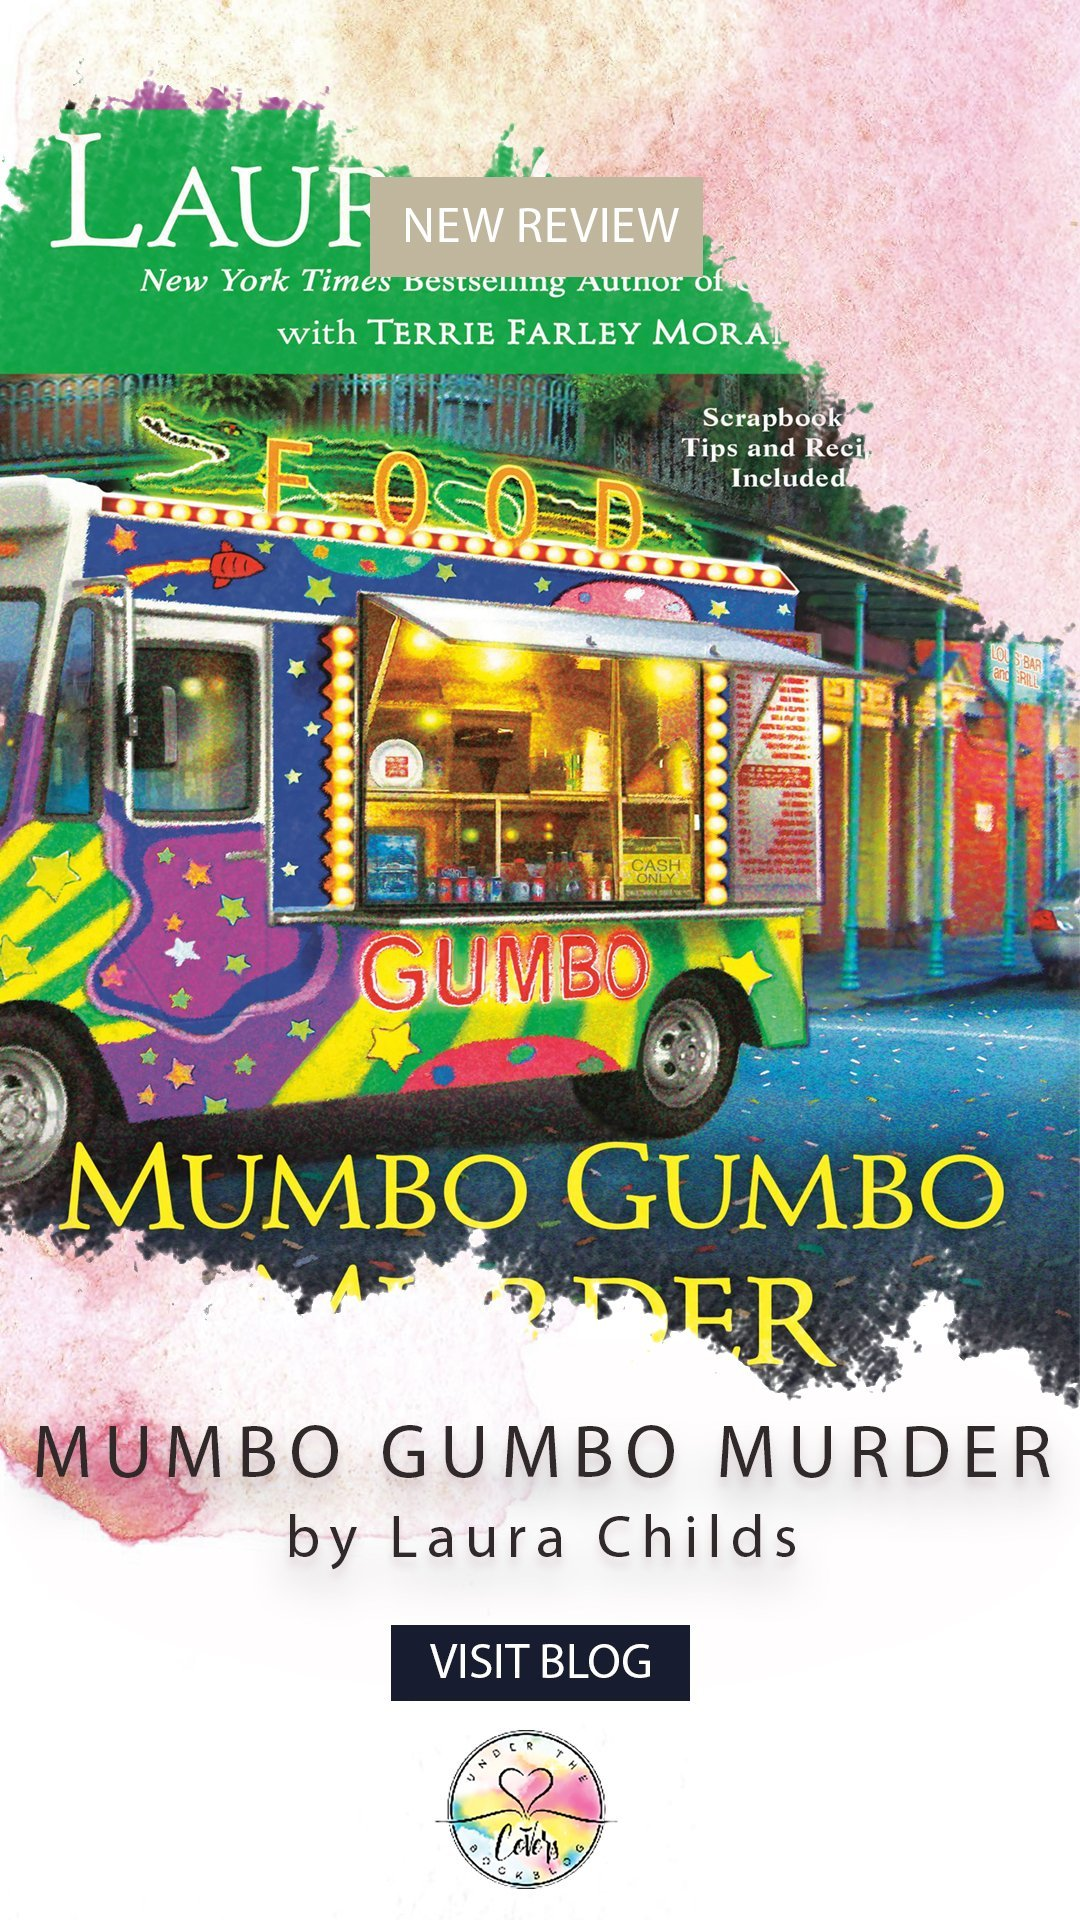 ARC Review: Mumbo Gumbo Murder by Laura Childs